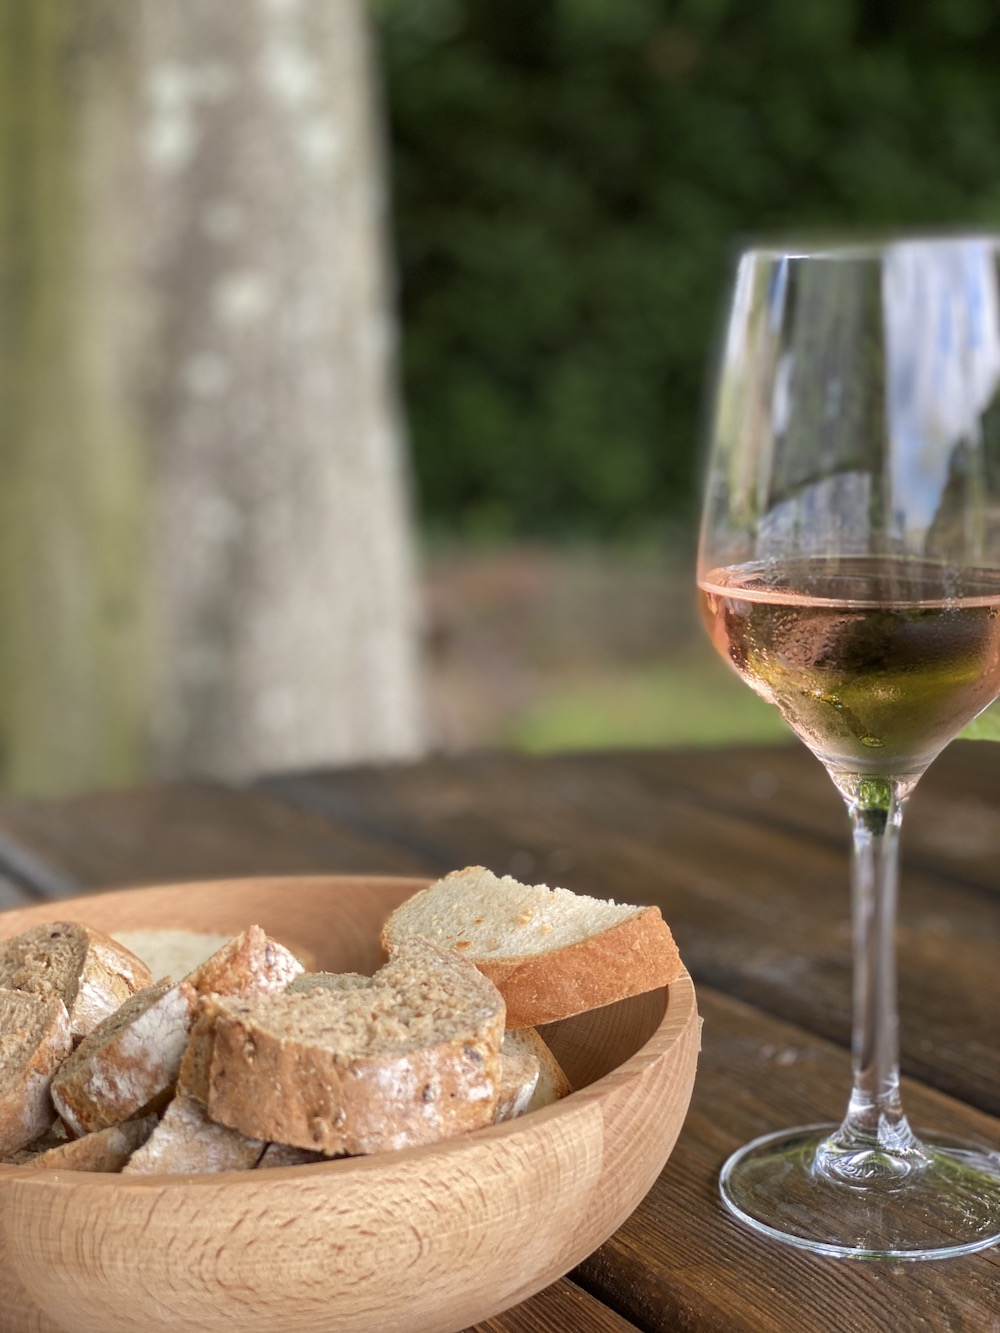 Rose wine and homemade bread at the falcon inn fotheringhay